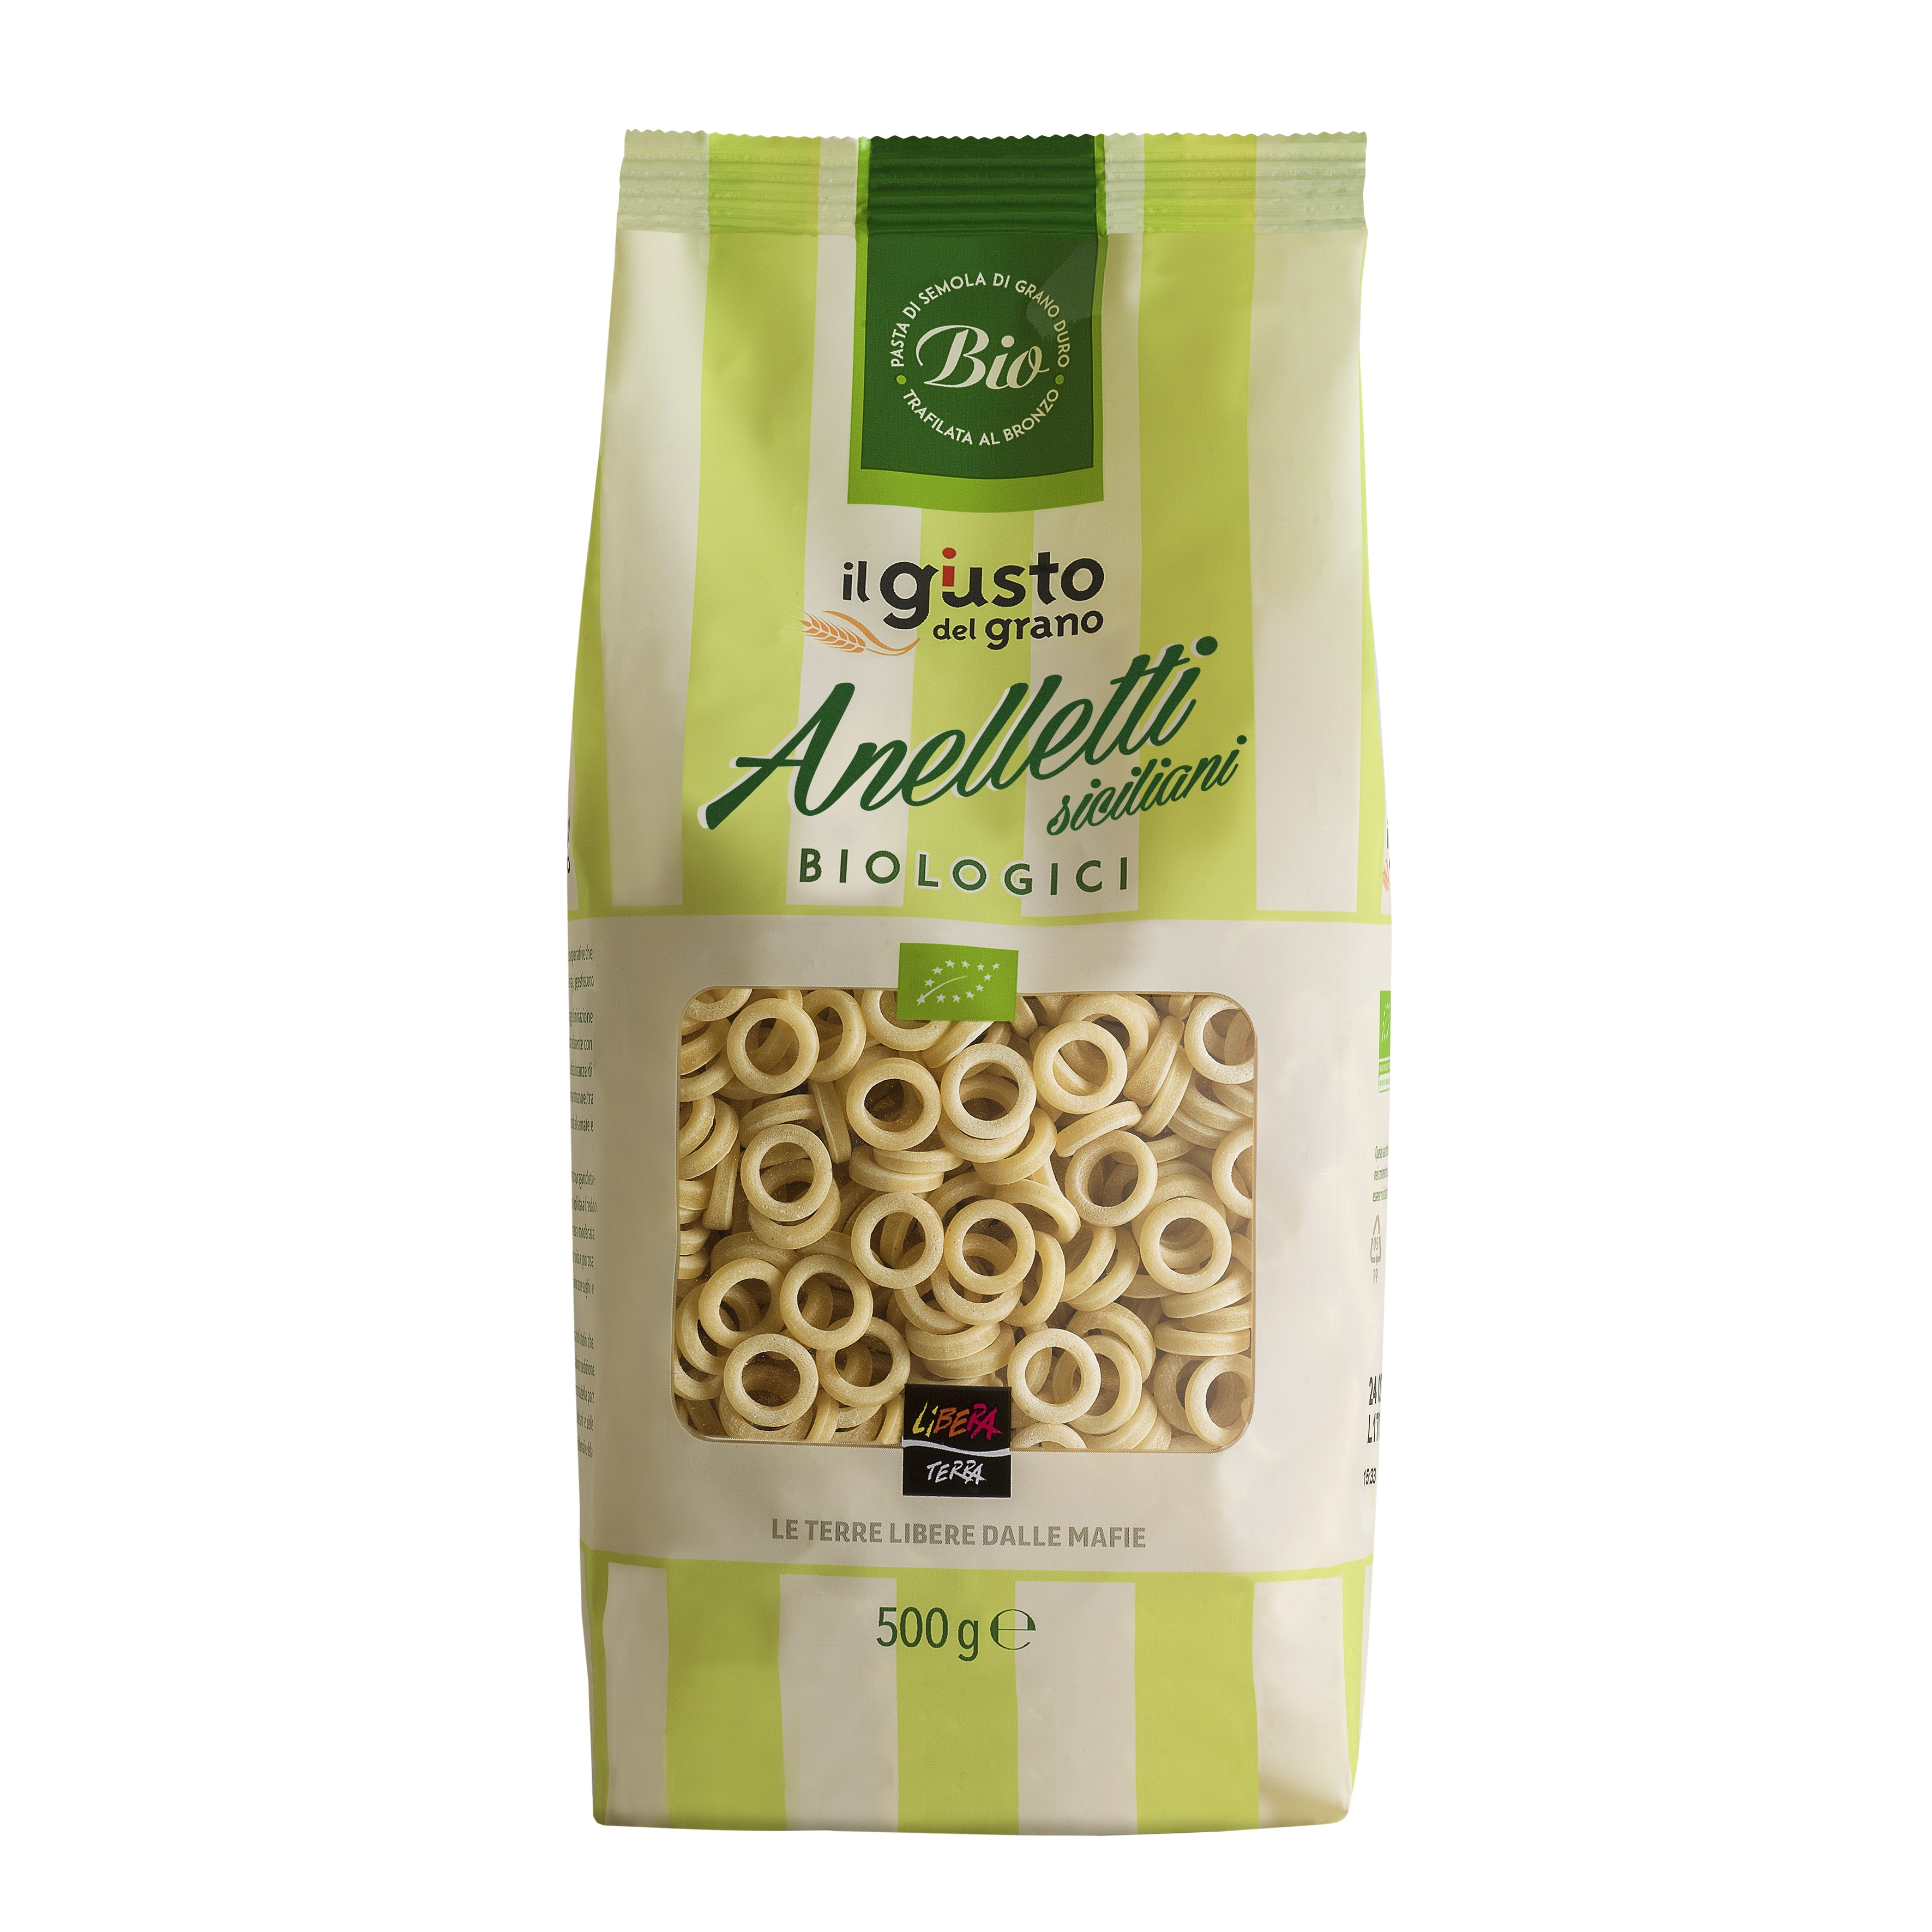 Anelletti Siciliani Biologici 500g